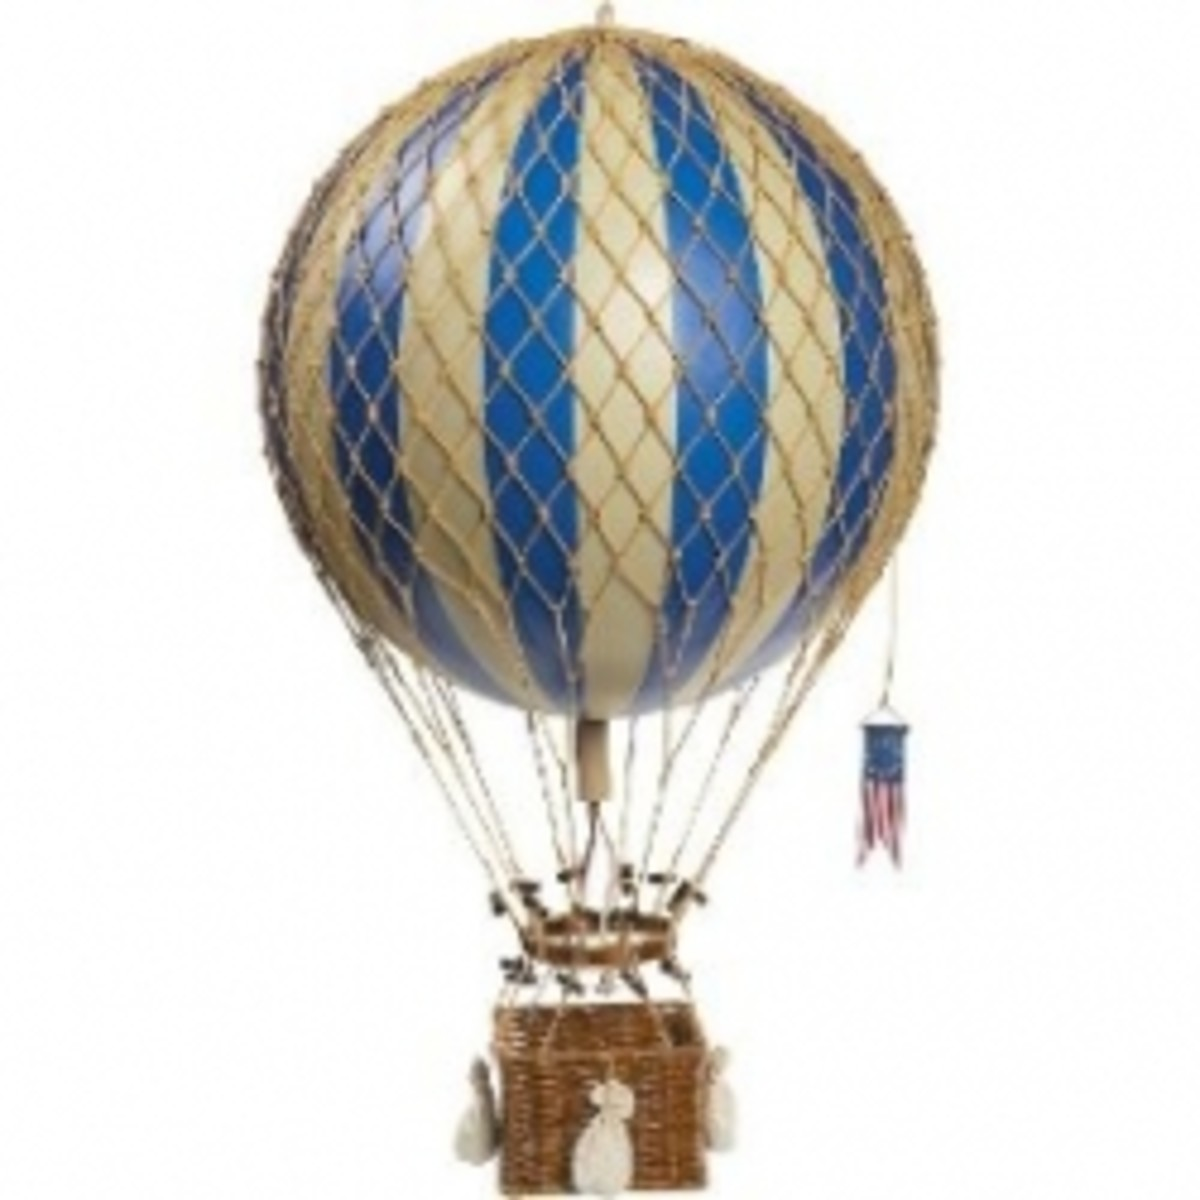 Royal Aero Model Balloon, Blue, Large